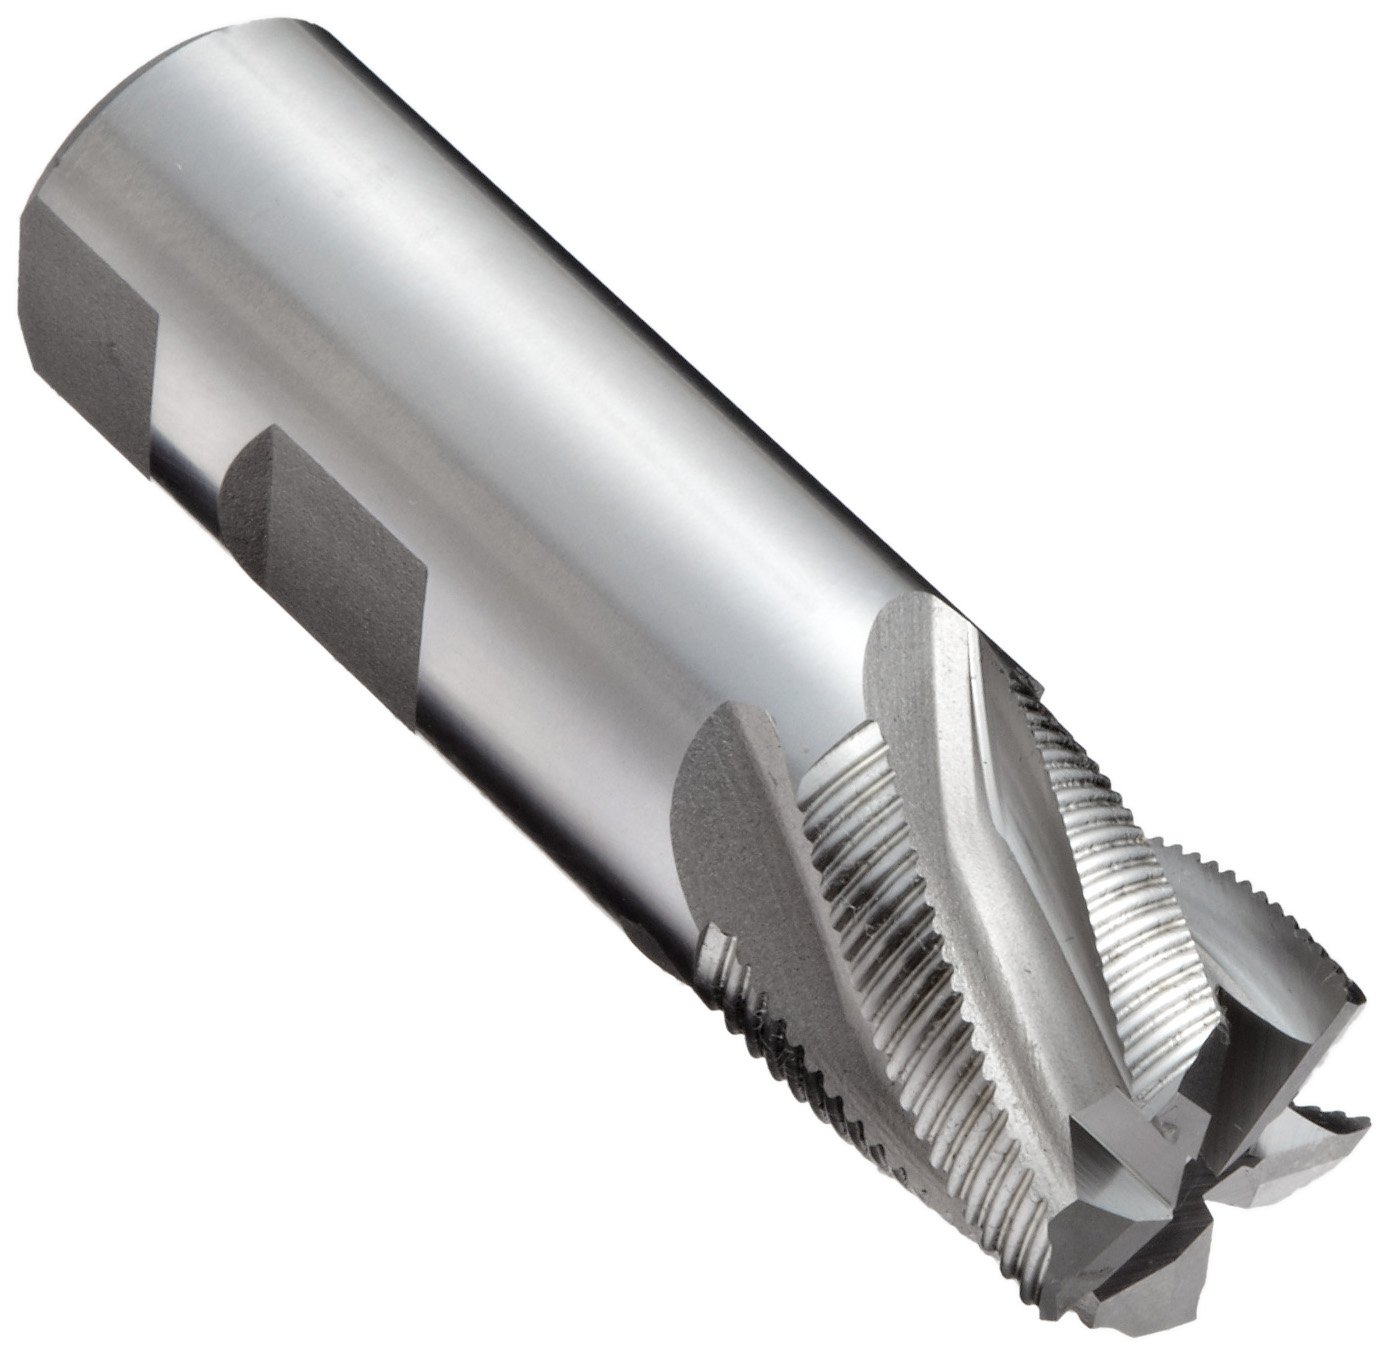 Bright YG-1 E5011 Carbide Square Nose End Mill 1 Cutting Diameter Uncoated 2 Flutes 30 Deg Helix Finish Long Reach 1 Shank Diameter 5 Overall Length 1 Cutting Diameter 1 Shank Diameter YG-1 Tool Company 02600 5 Overall Length